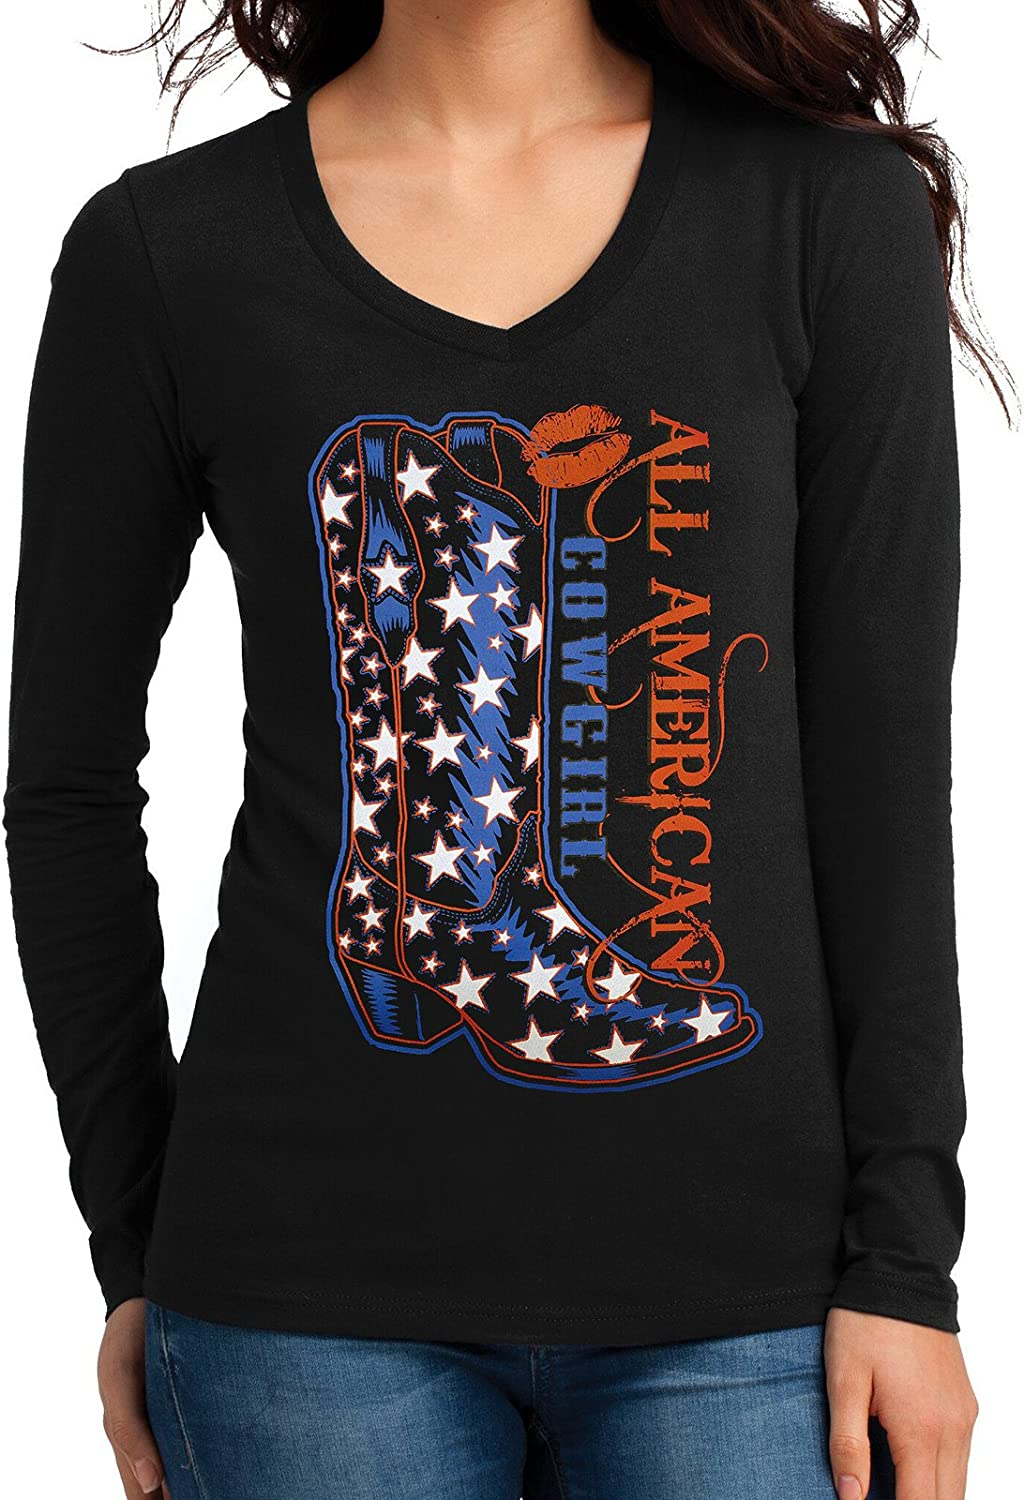 New All American Cowgirl Boot Junior/'s V Neck Long Sleeve T Shirt Rodeo Western